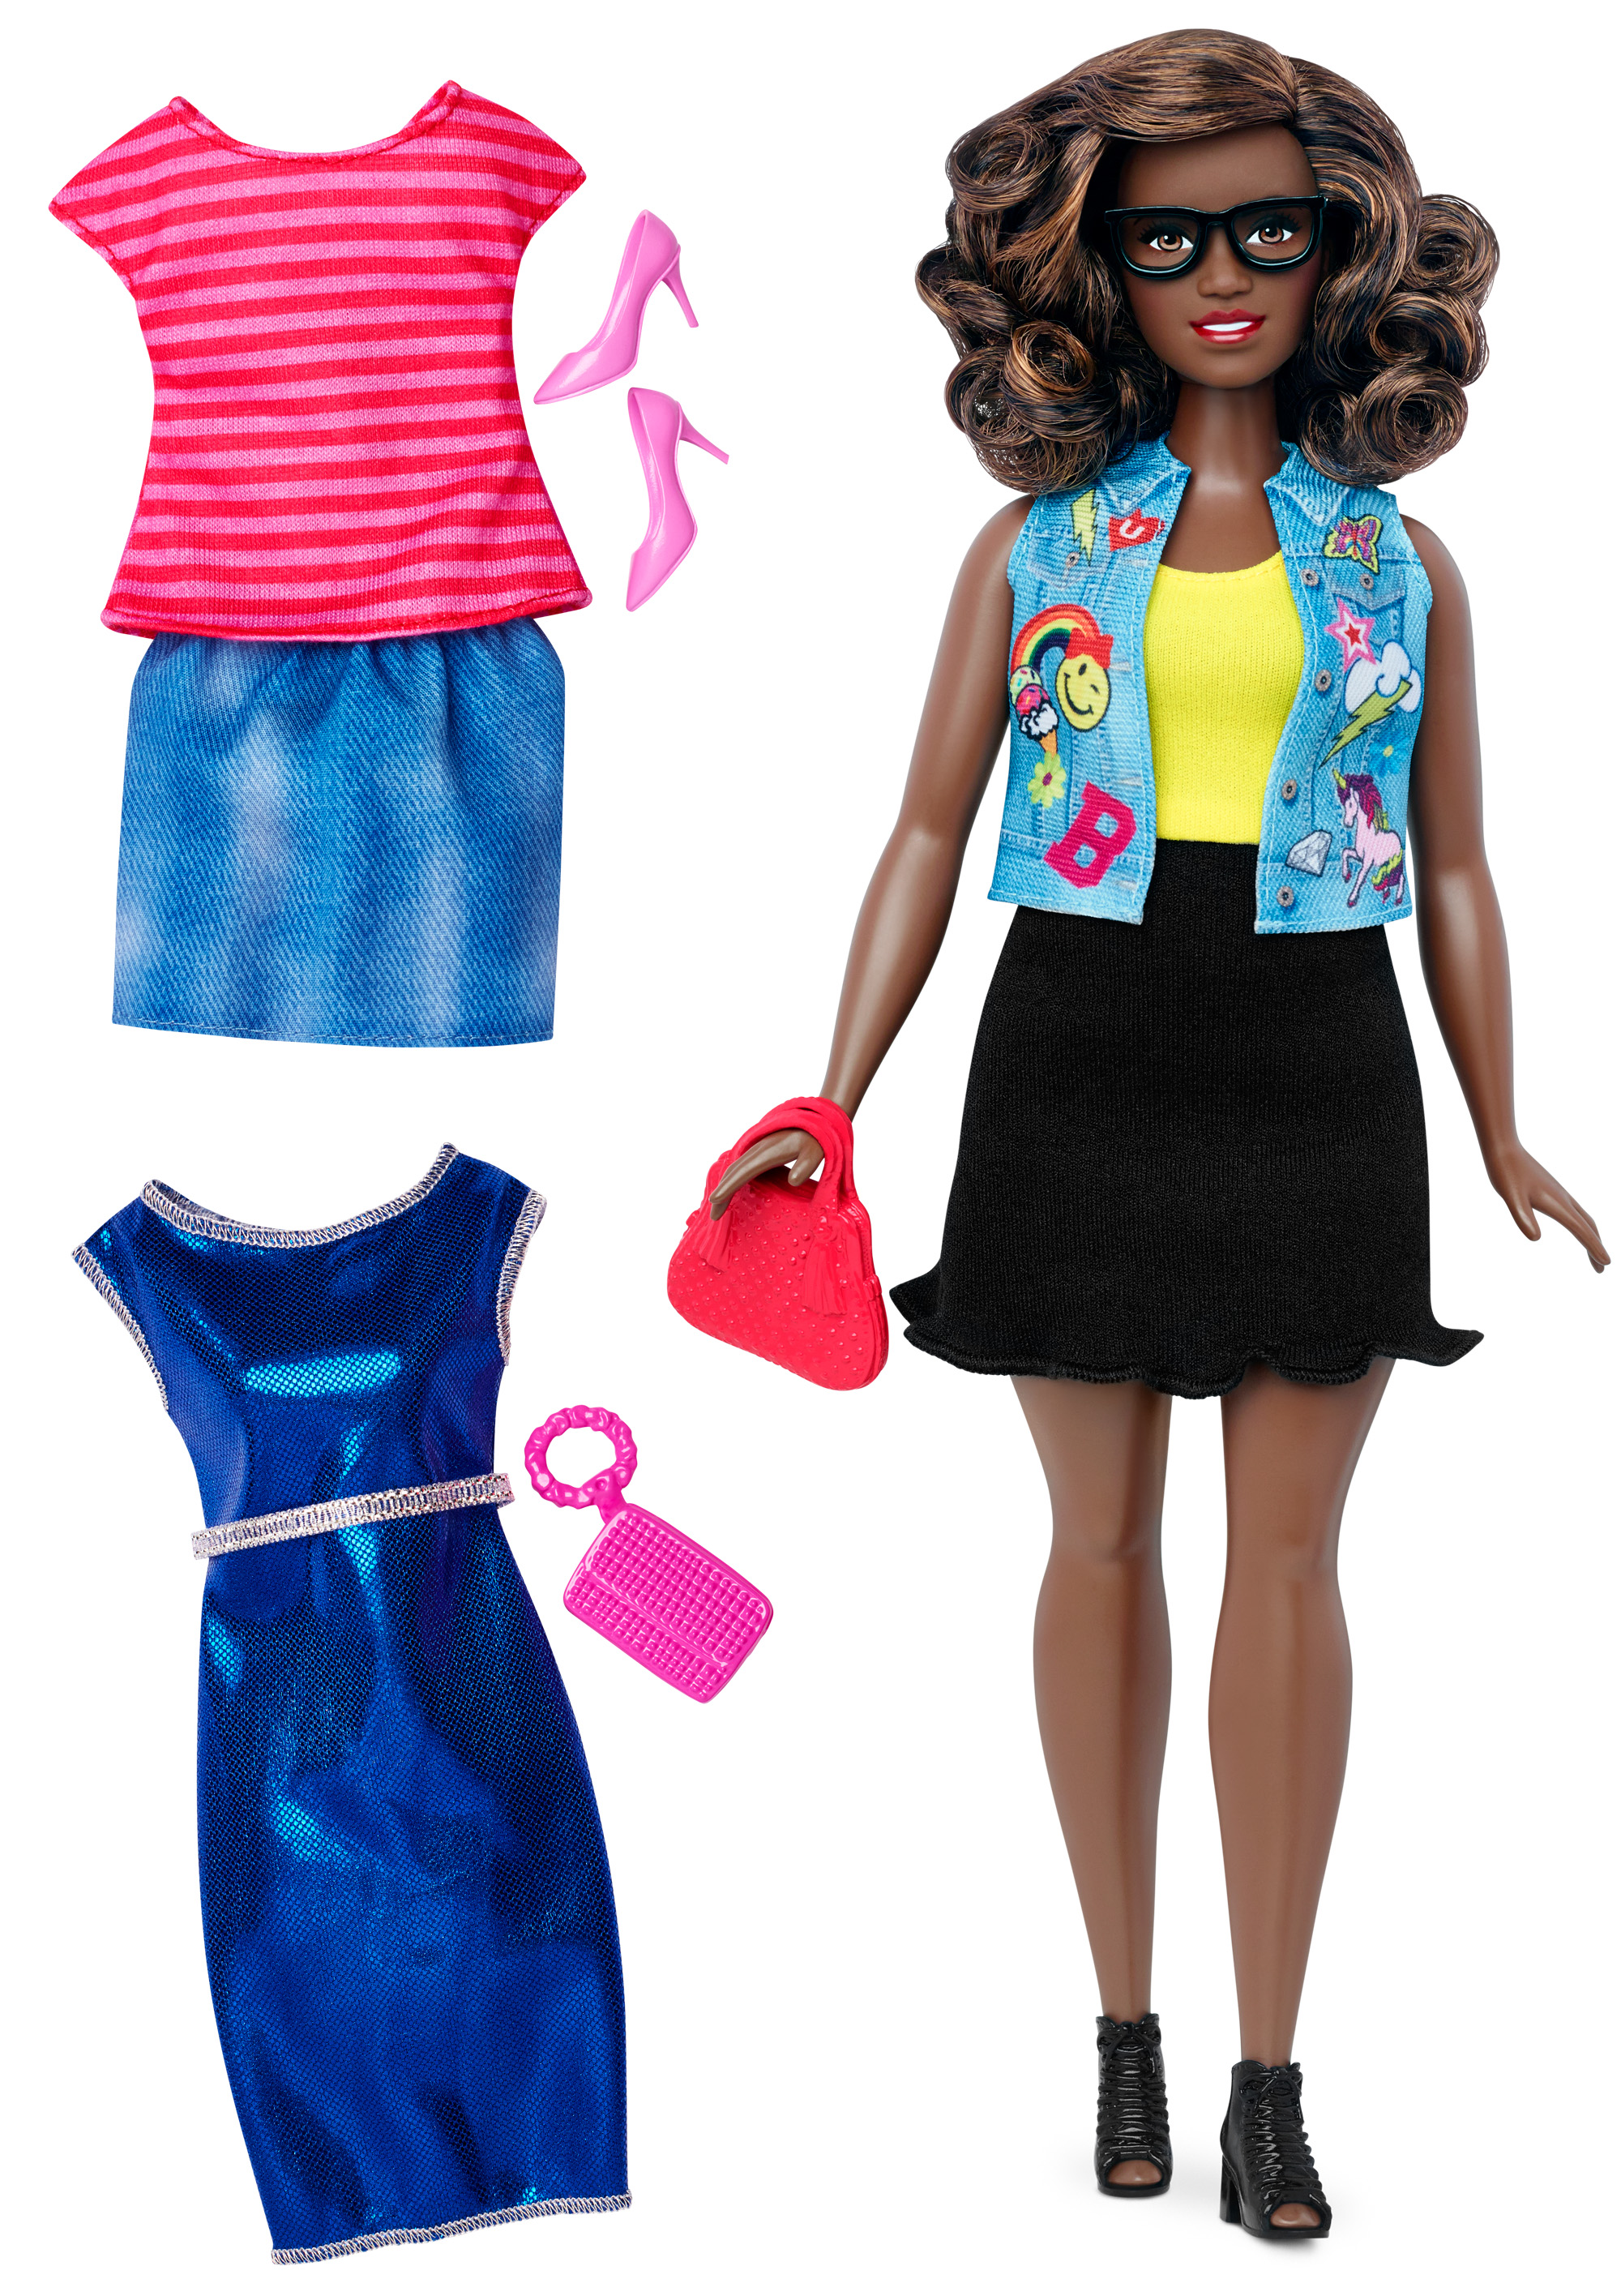 Barbie Emoji Fun Fashionista Gift Set by MATTEL INC.